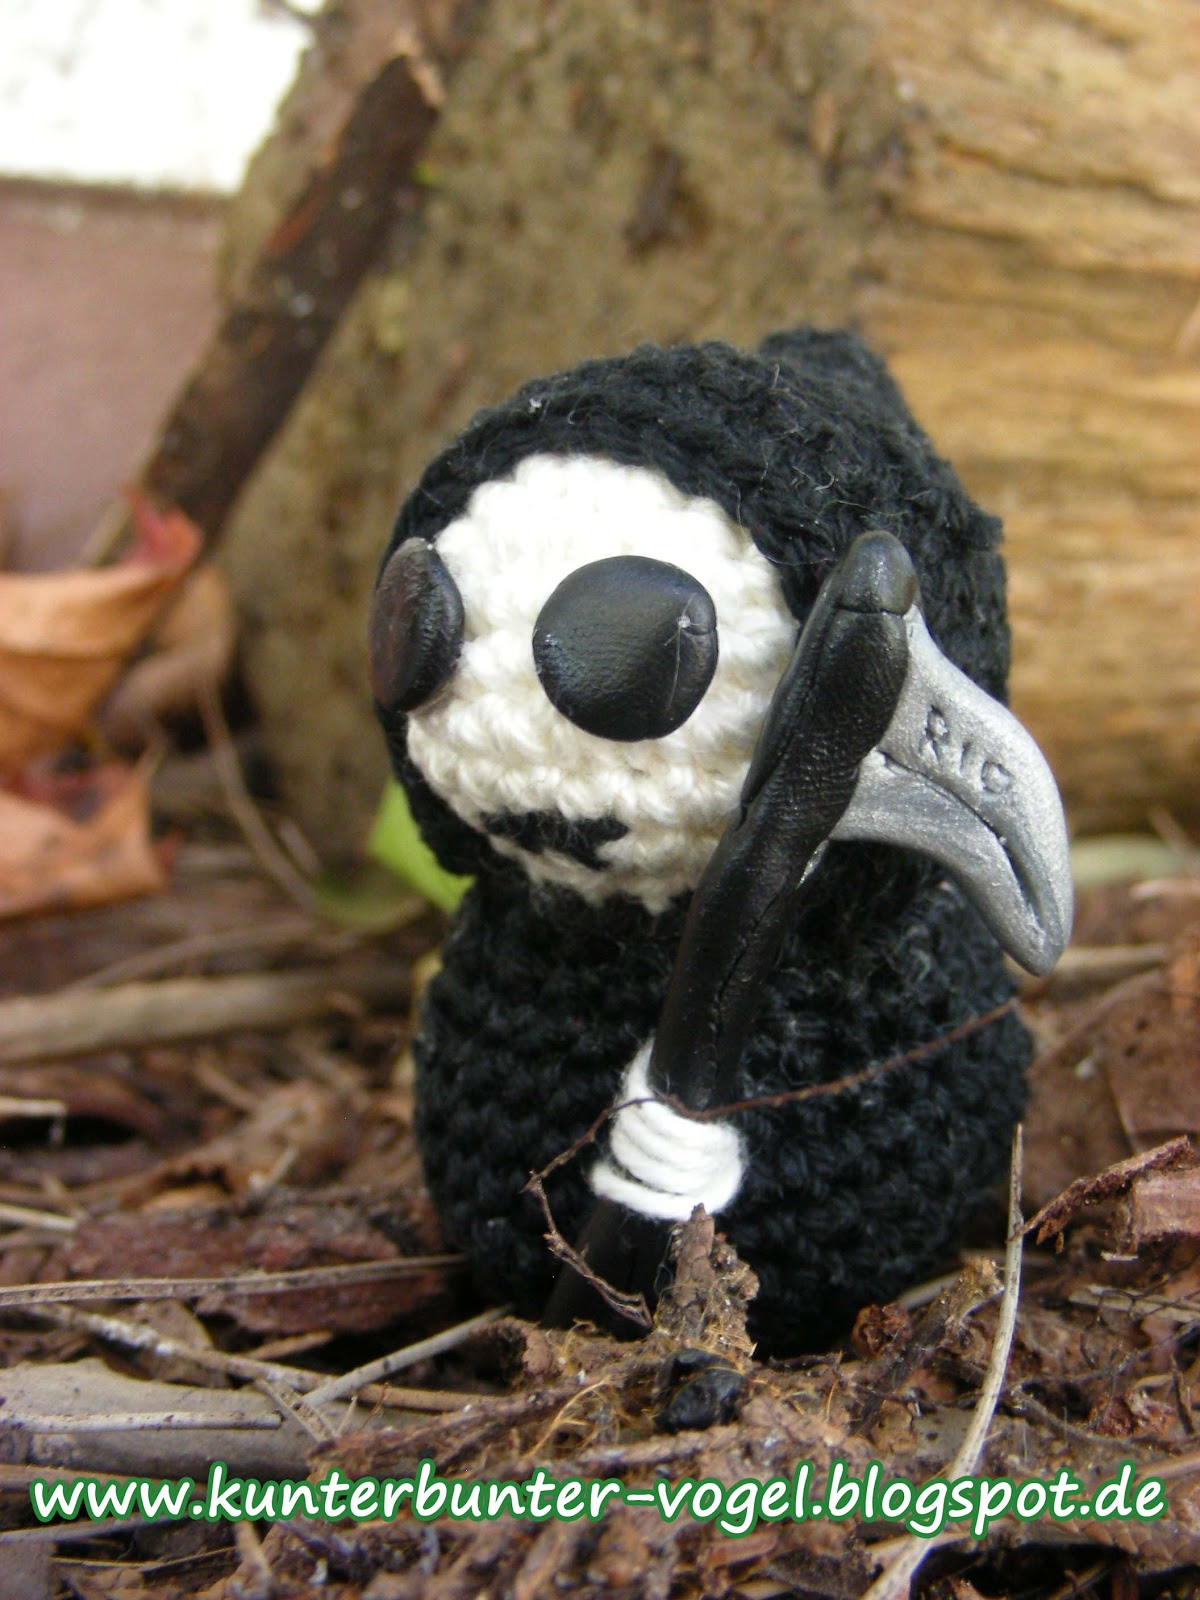 Kunterbunter Vogel Buchrezension Mini Monster Amigurumi